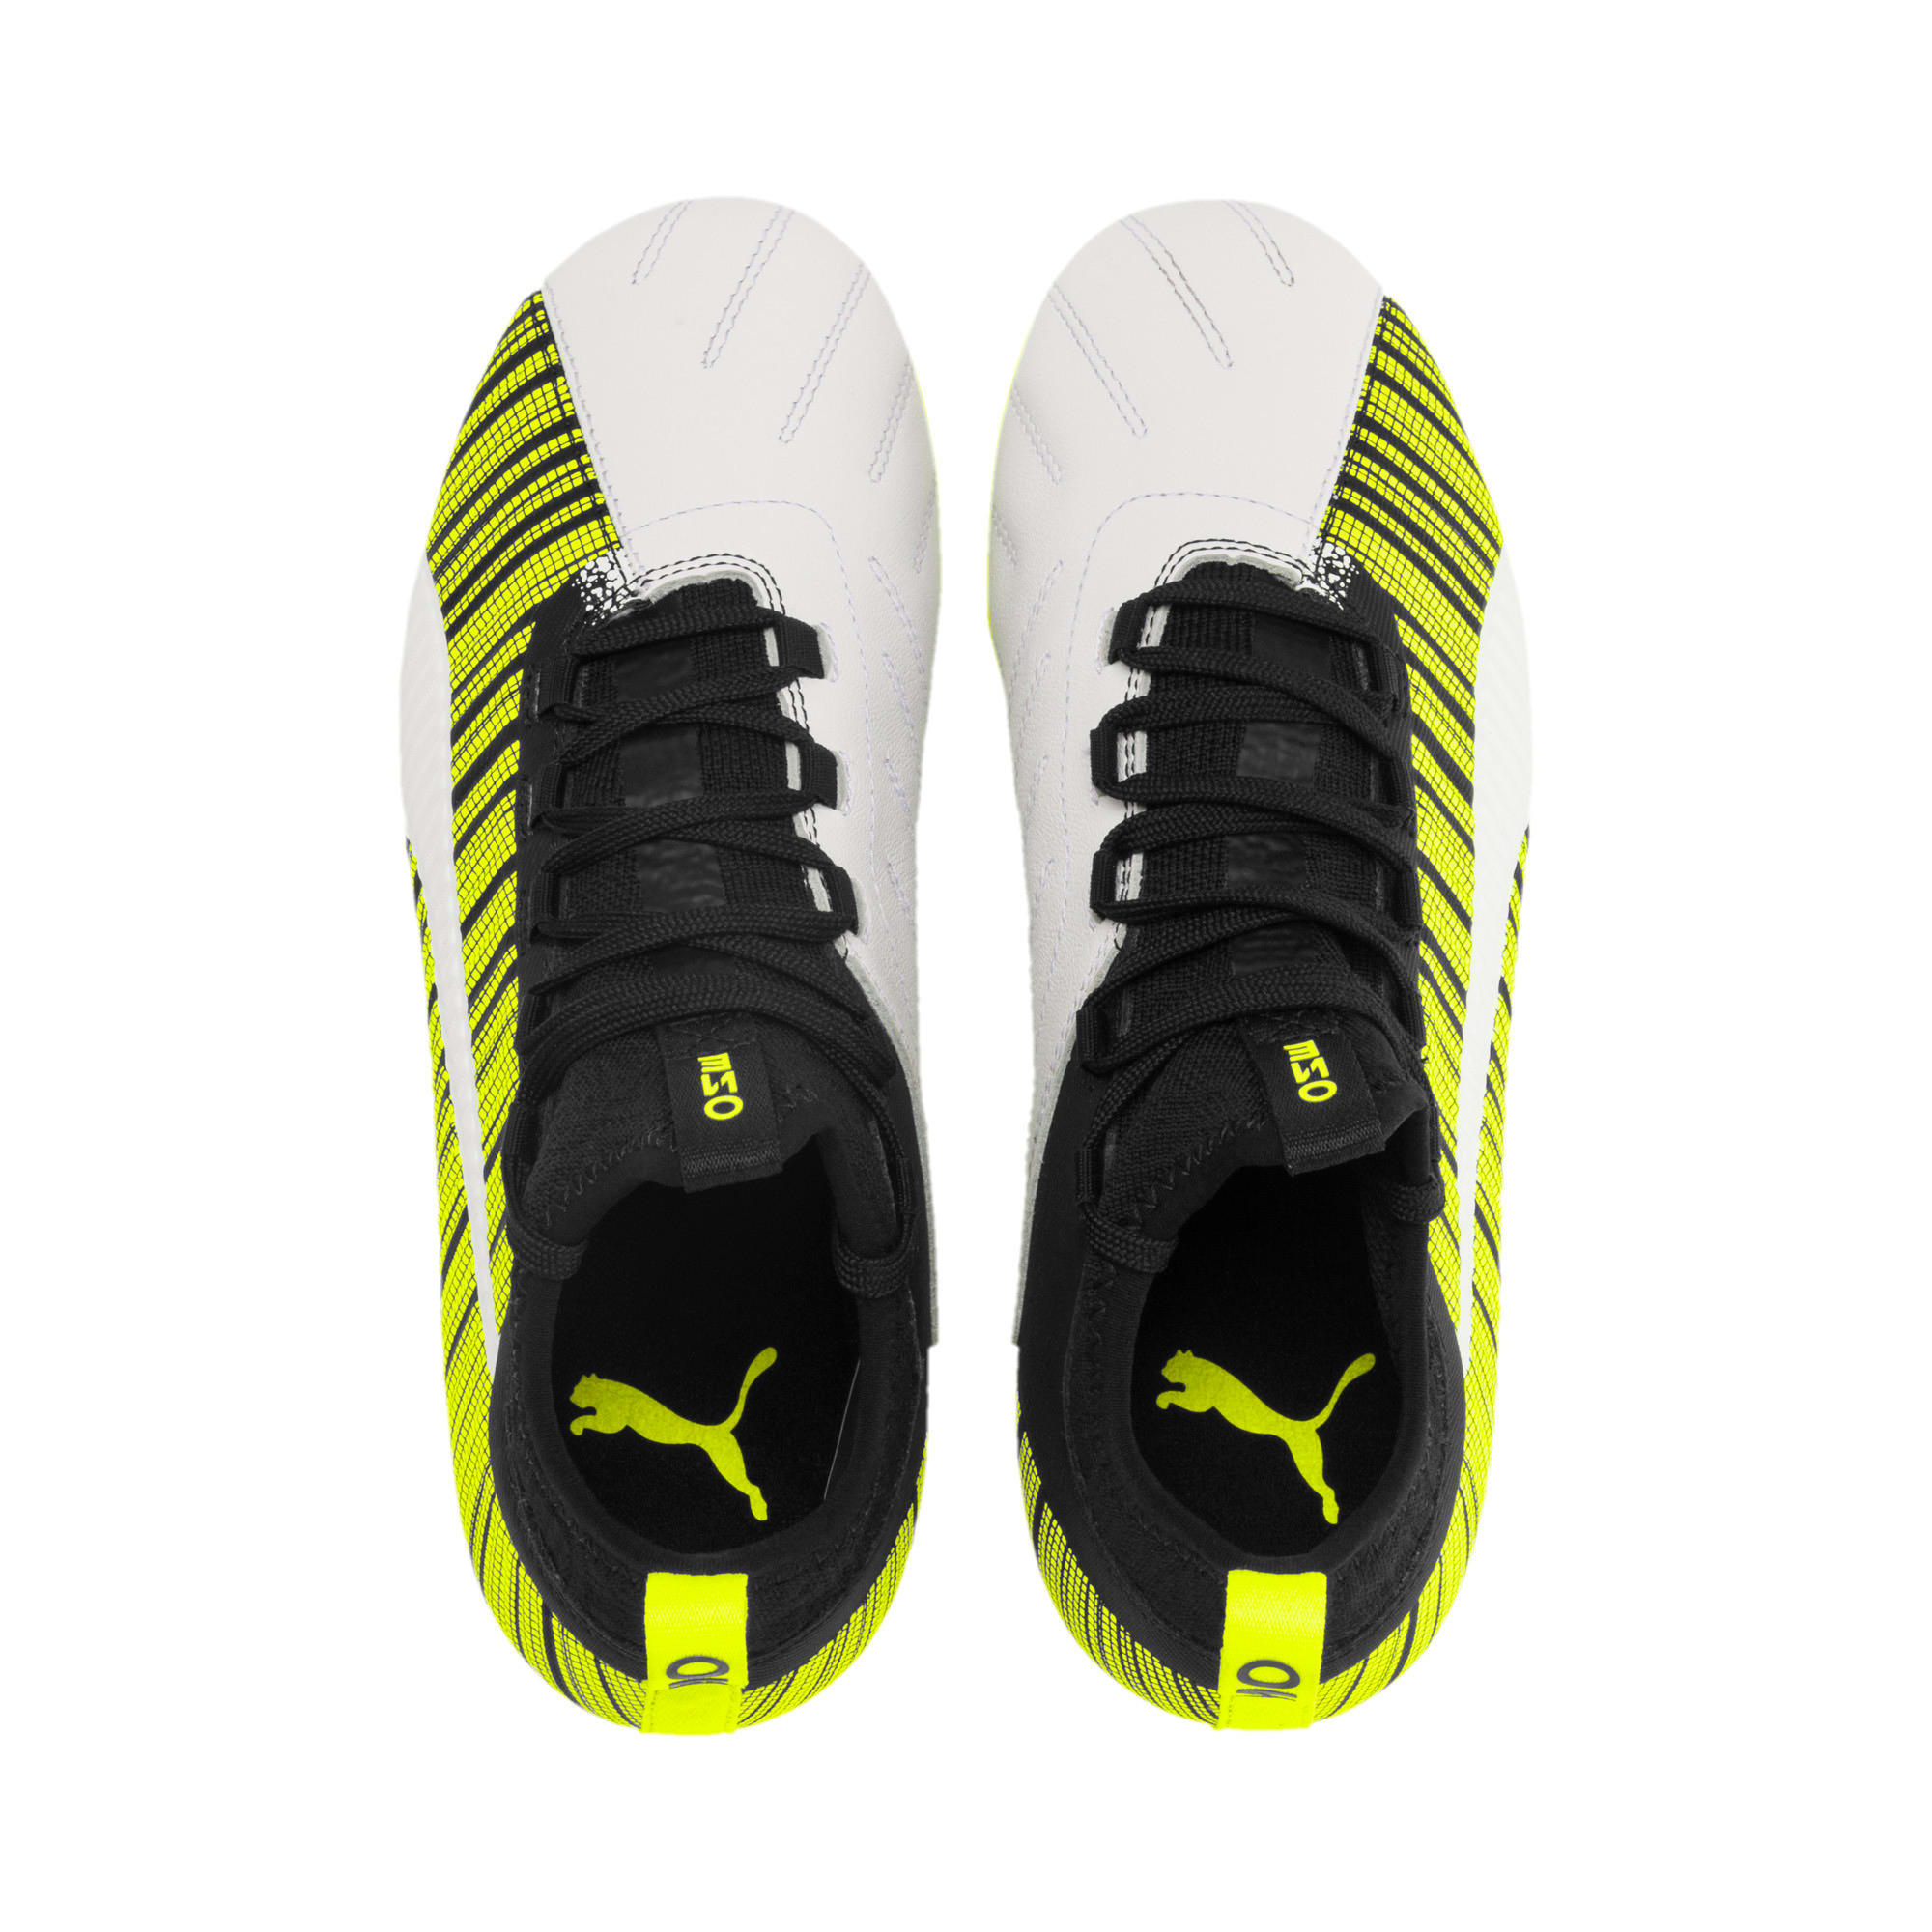 Thumbnail 6 of PUMA ONE 5.4 Youth Football Boots, White-Black-Yellow Alert, medium